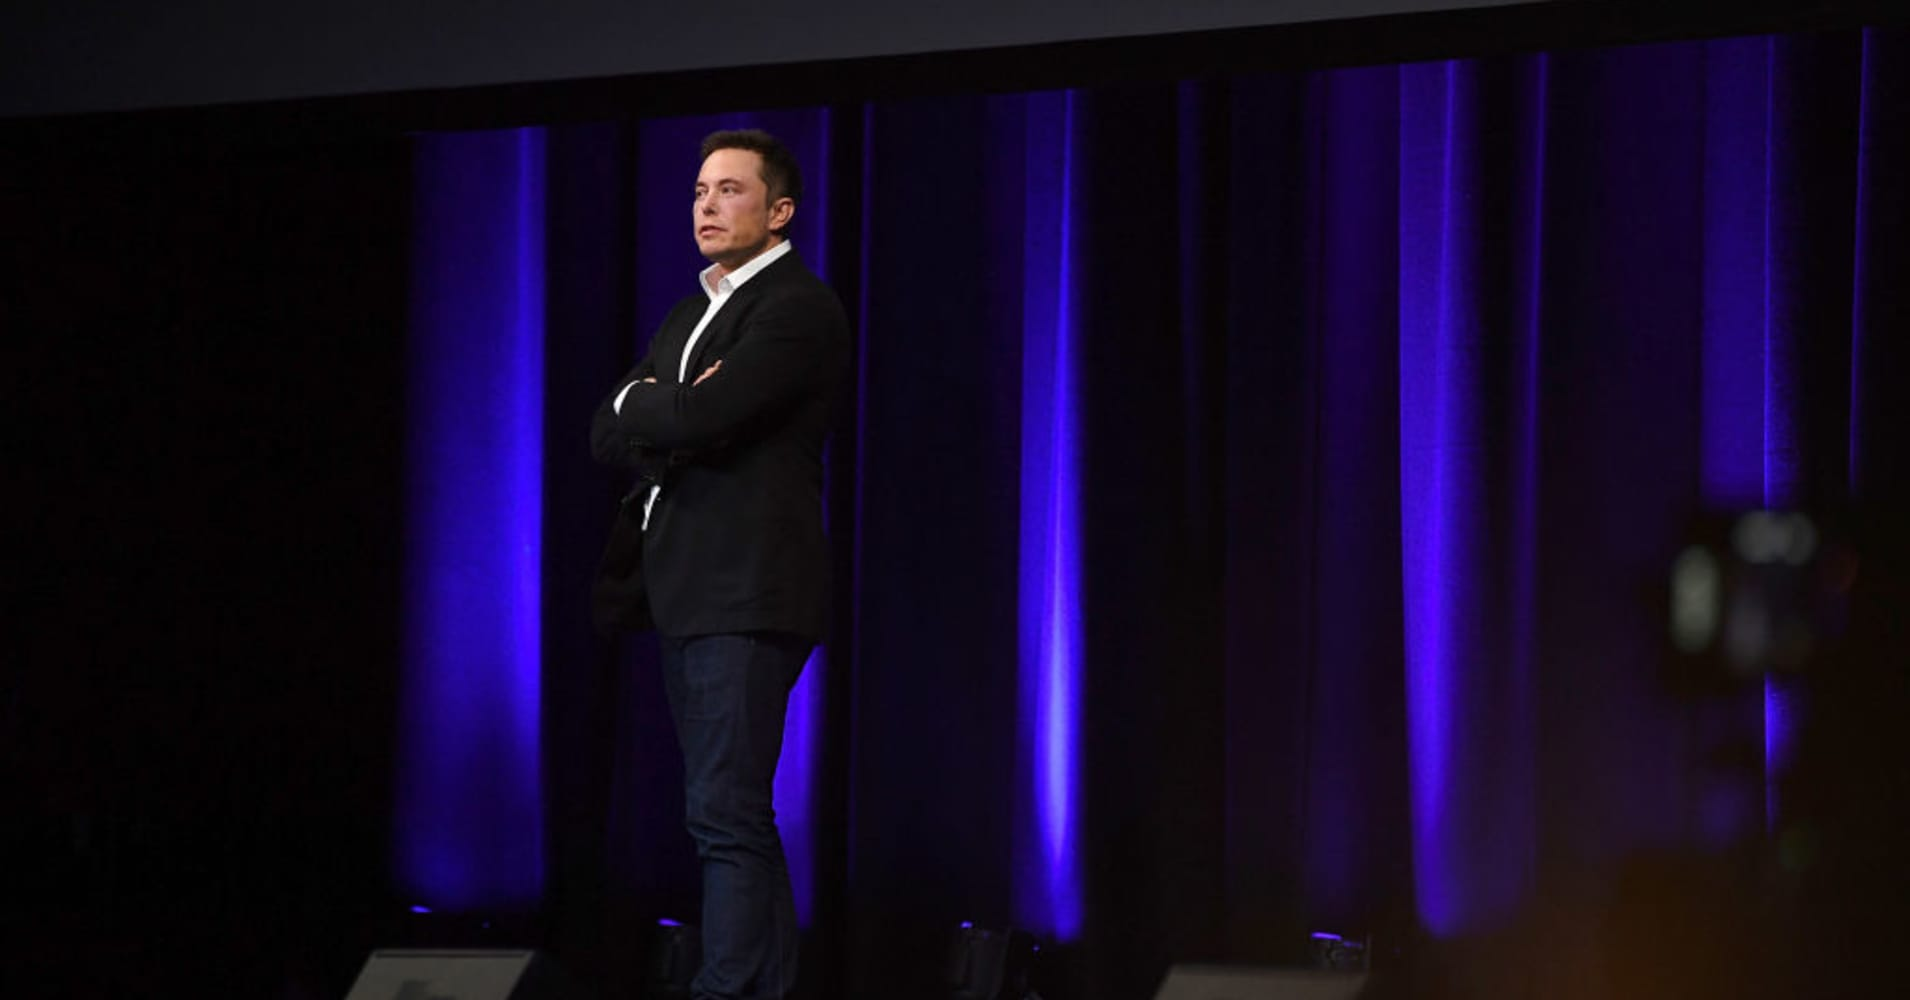 Elon Musk Unveils Ambitious Plan To Build A City On Mars